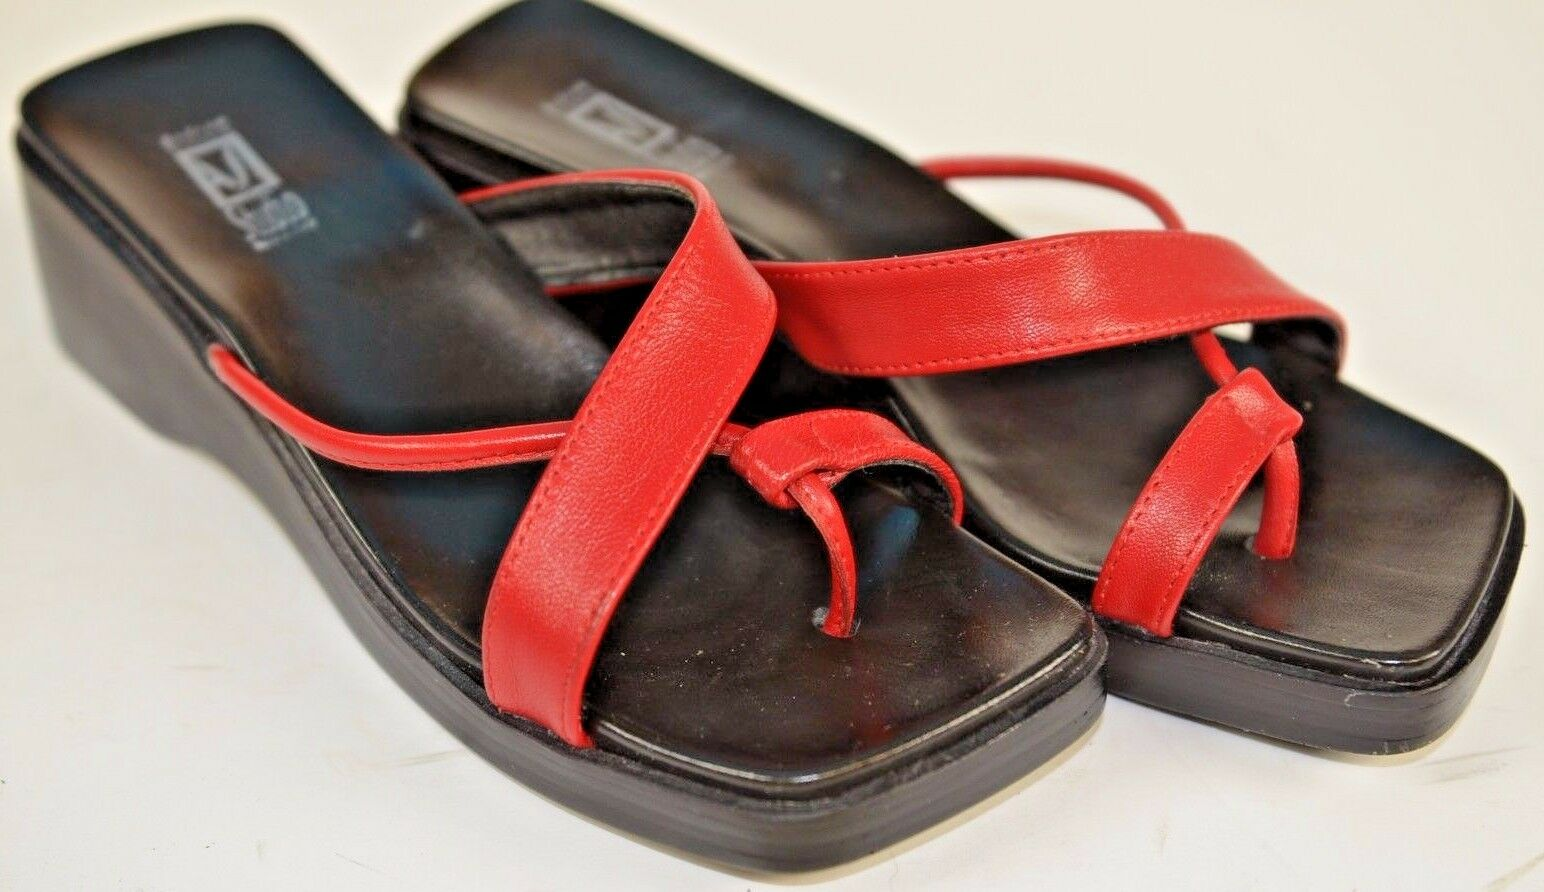 Andrew Stevens Wedge Flip Flops Red Italy Size 38 Summer Fun Size 7 US Sandals